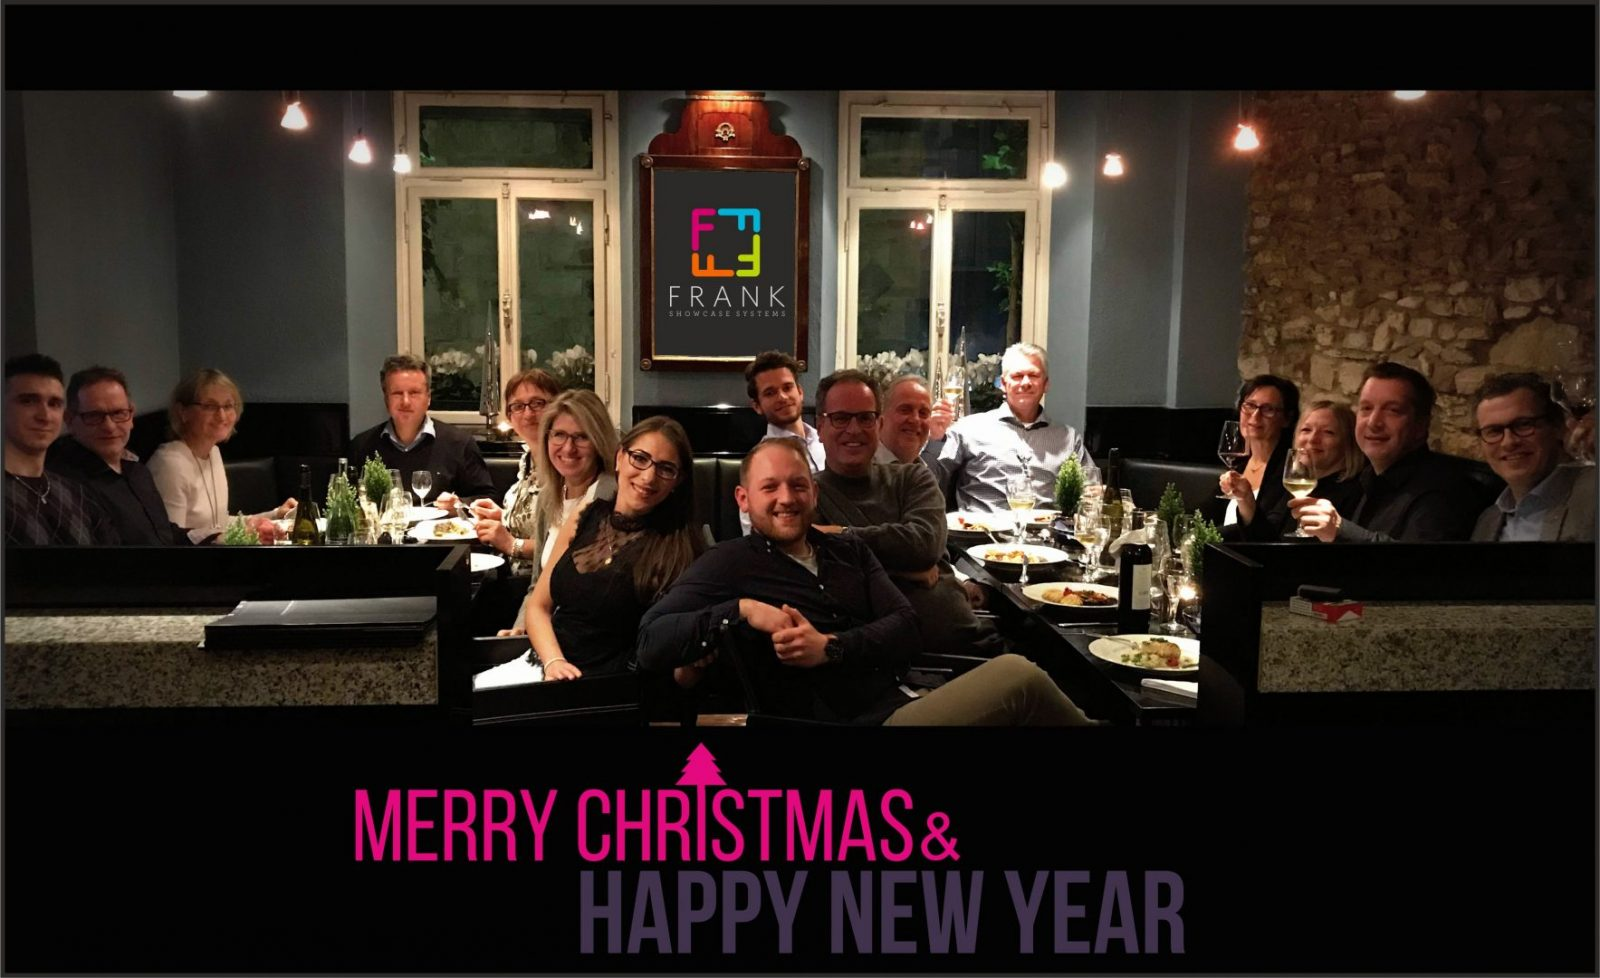 Wishing you a Merry Christmas and a fantastic start in the New Year 2018